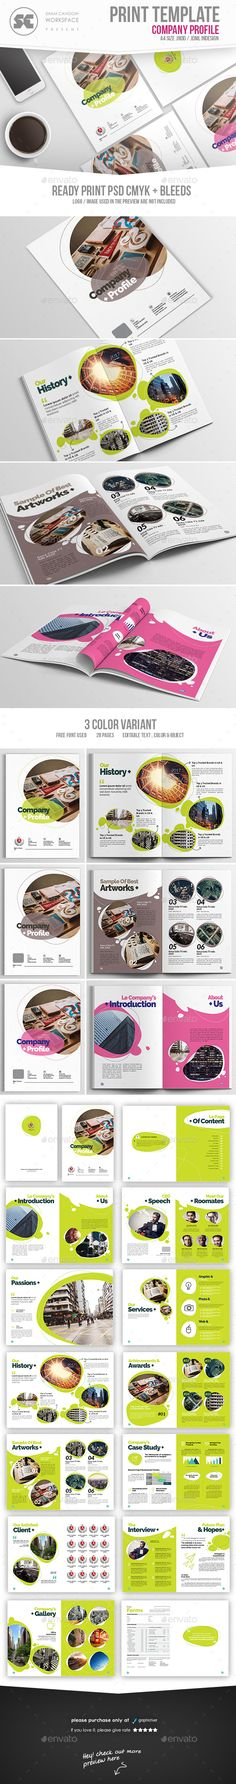 Company Profile Brochure Template InDesign INDD. Download here: https://graphicriver.net/item/company-profile/17384529?ref=ksioks